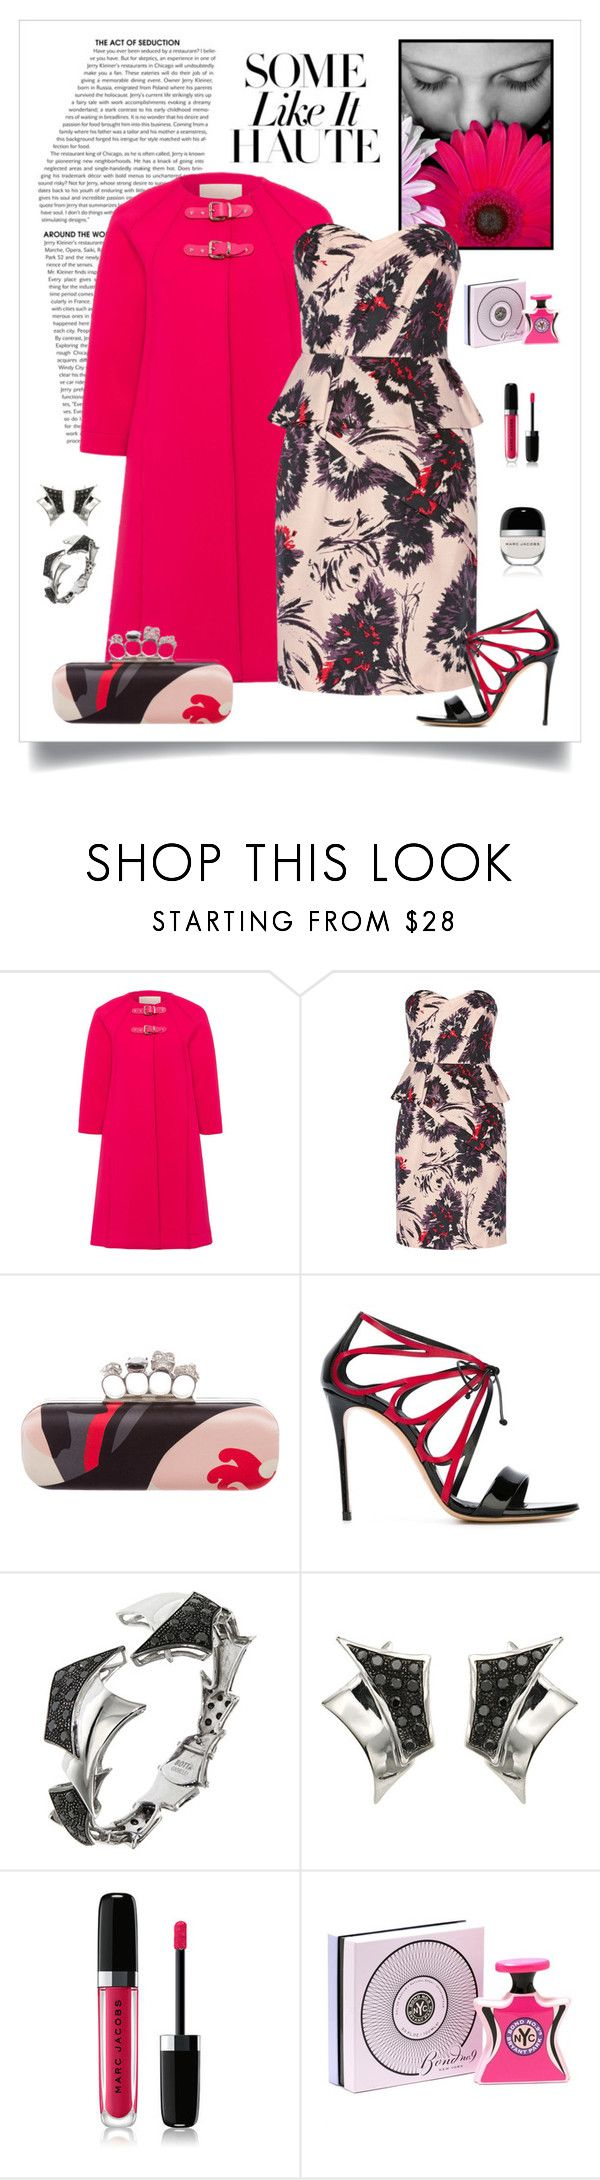 """Mikael Aghal Printed Cotton Peplum Dress"" by romaboots-1 ❤ liked on Polyvore featuring Marina Hoermanseder, Mikael Aghal, Alexander McQueen, Casadei, Botta Gioielli, Marc Jacobs and Bond No. 9"